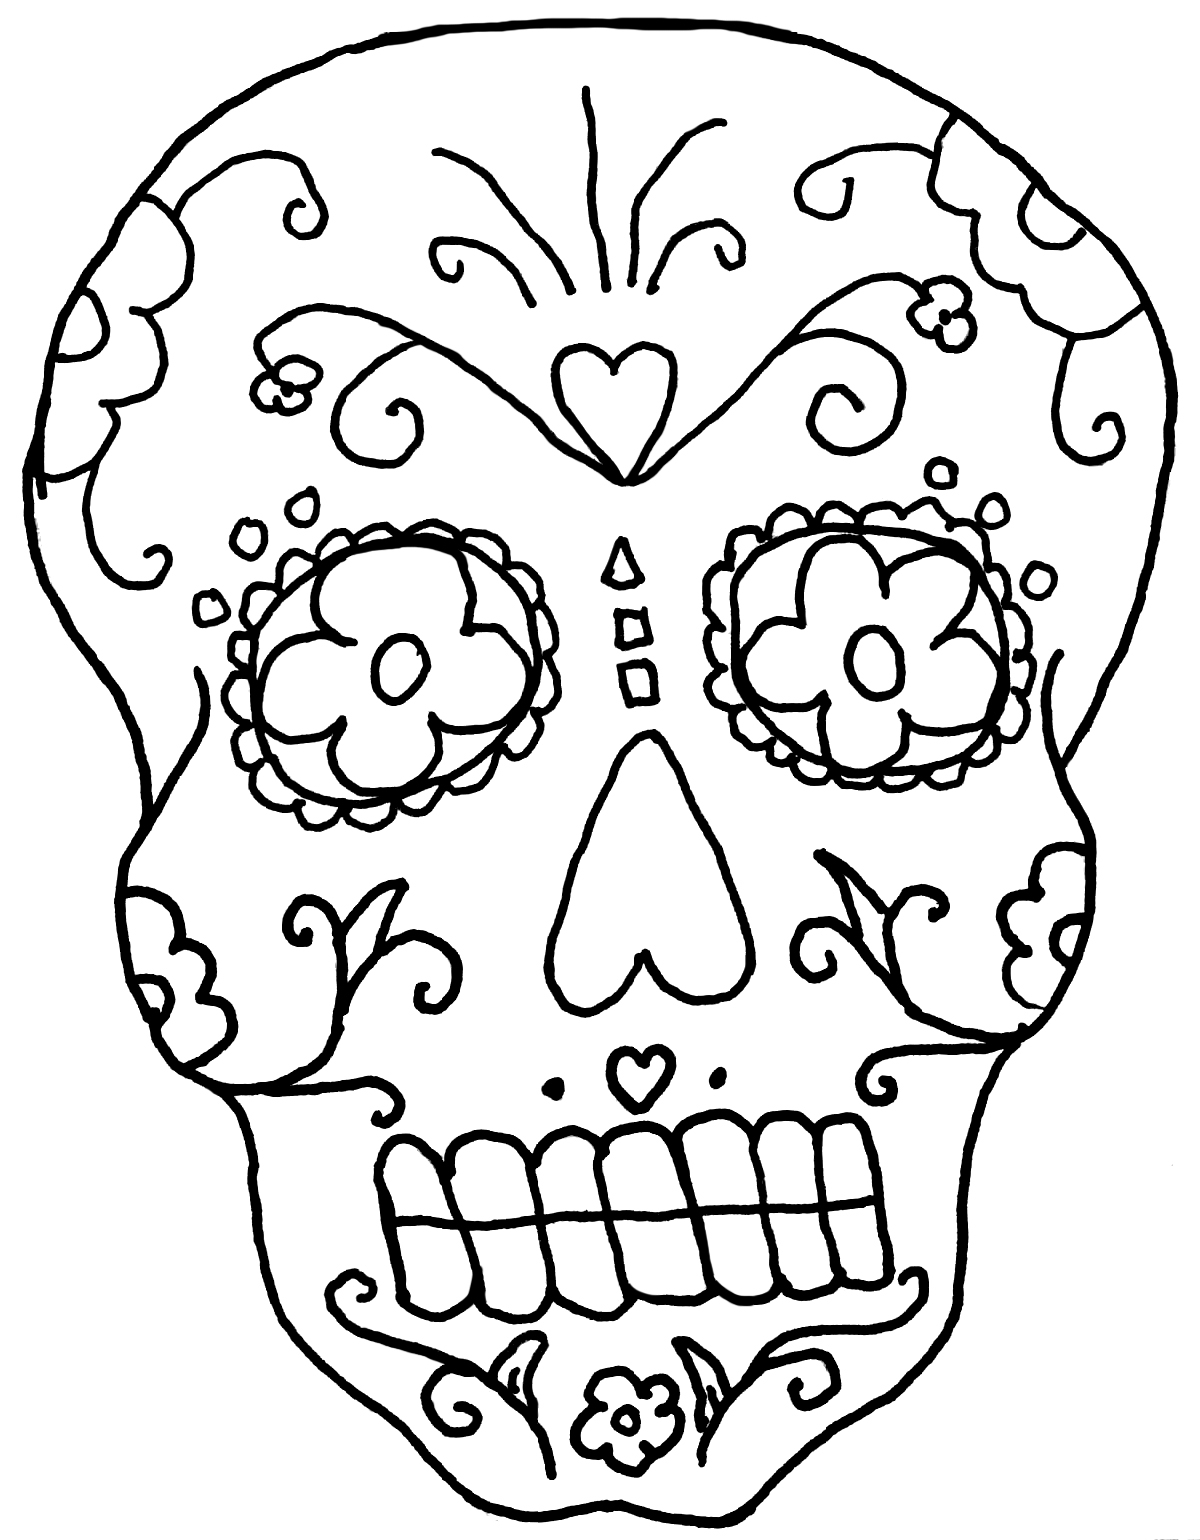 Day Of The Dead Skull Drawing at GetDrawings.com | Free for personal ...